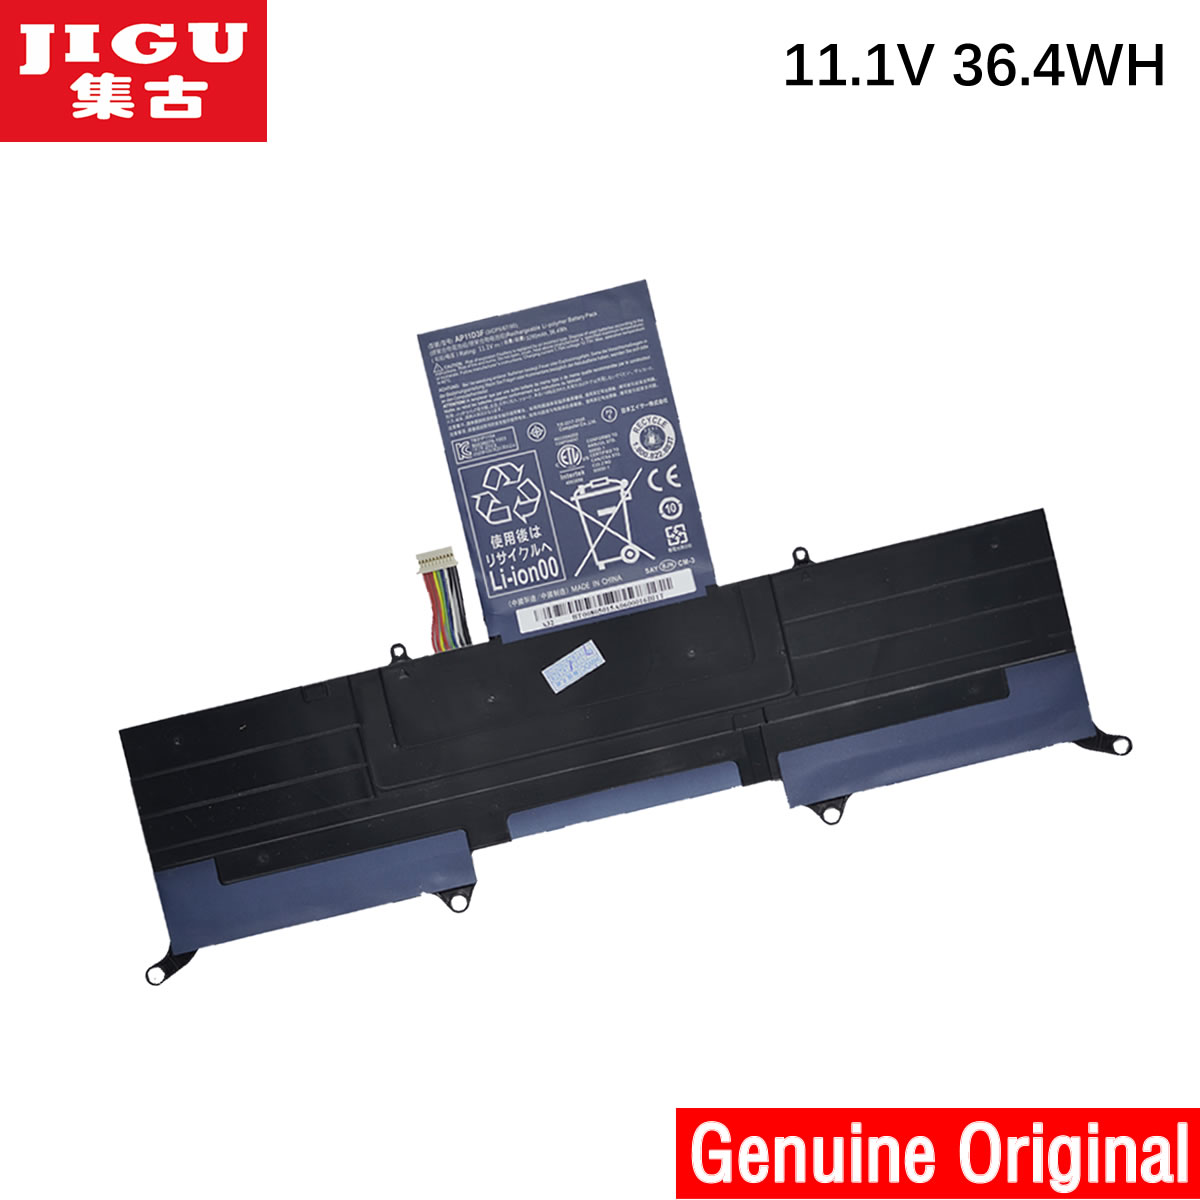 JIGU 3ICP5/65/88 3ICP5/67/90 <font><b>AP11D3F</b></font> AP11D4F Original Laptop Battery For ACER Aspire S3 S3-391 S3-951 MS2346 image